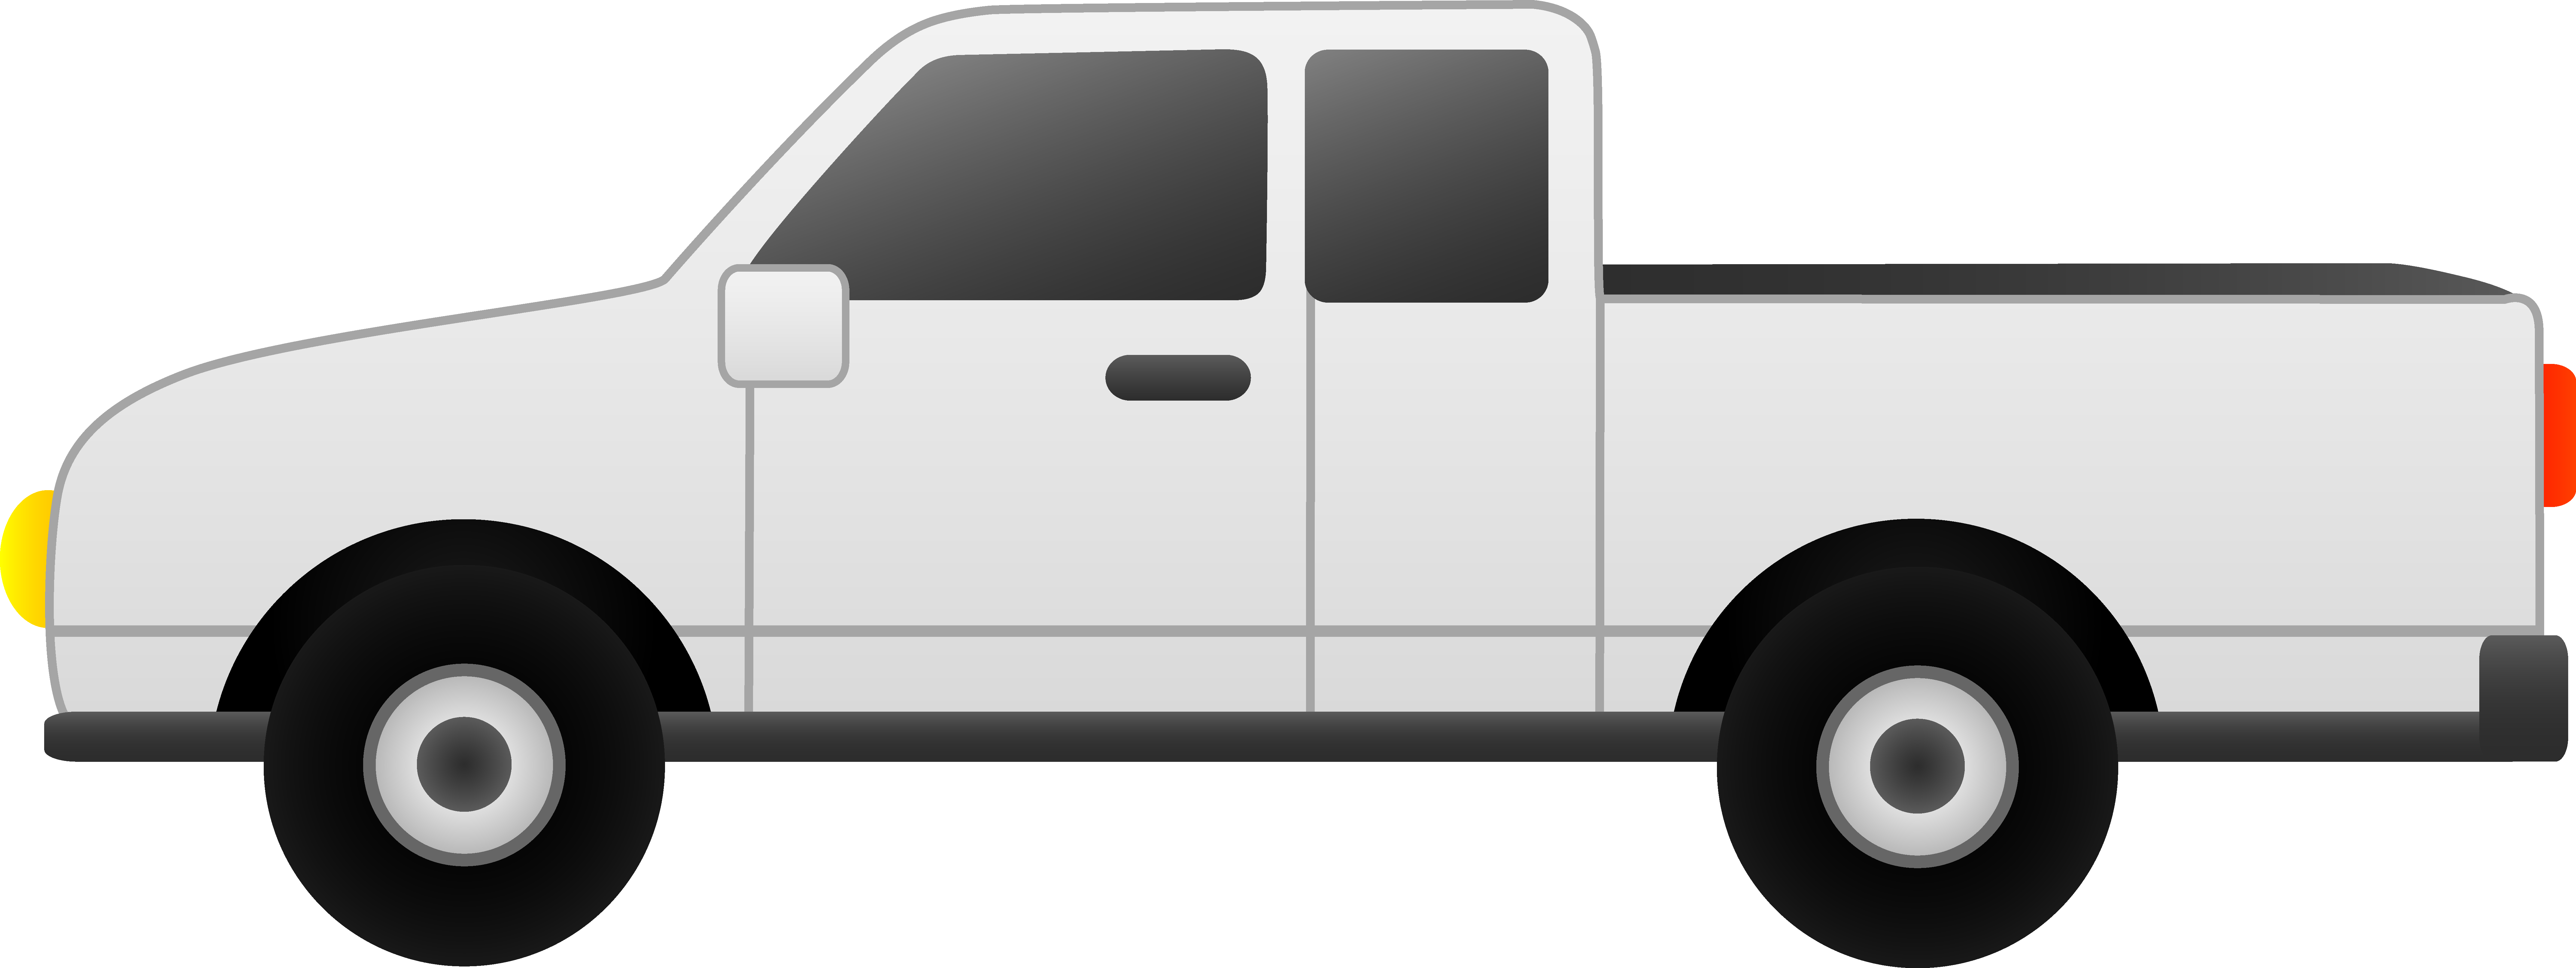 Pick up truck clipart jpg black and white Top Pickup Truck Clipart Style jpg black and white